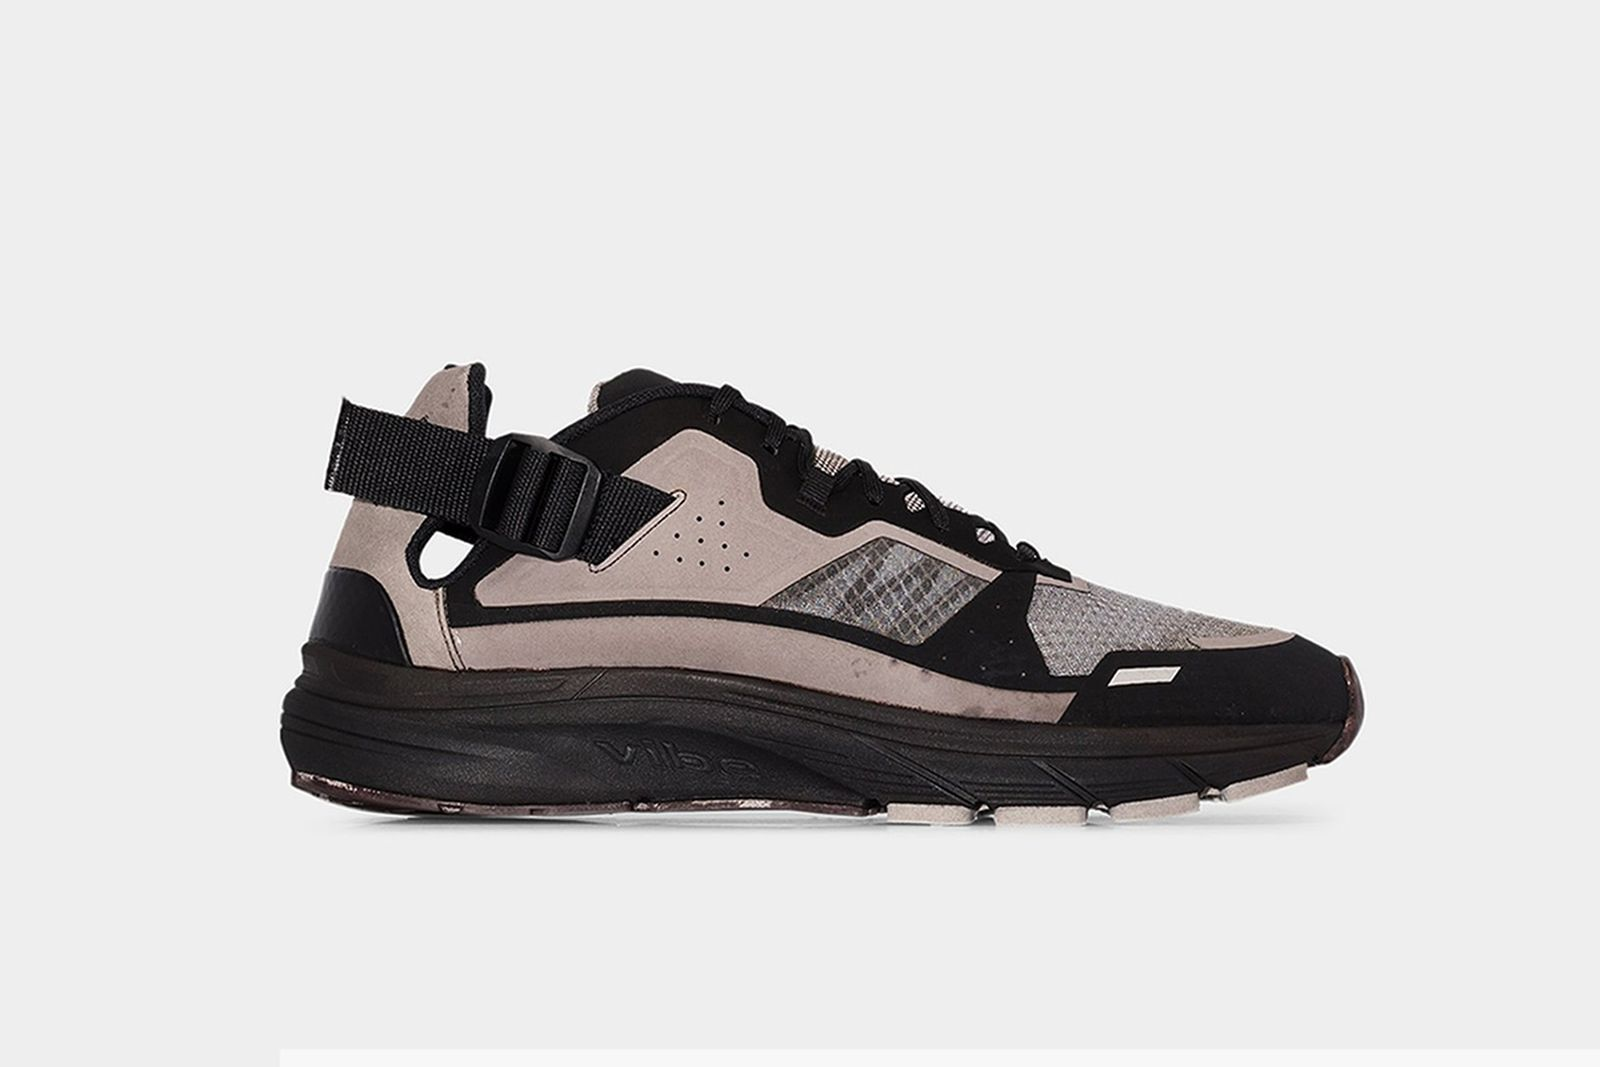 sneakers-for-people-who-hate-sandals-main